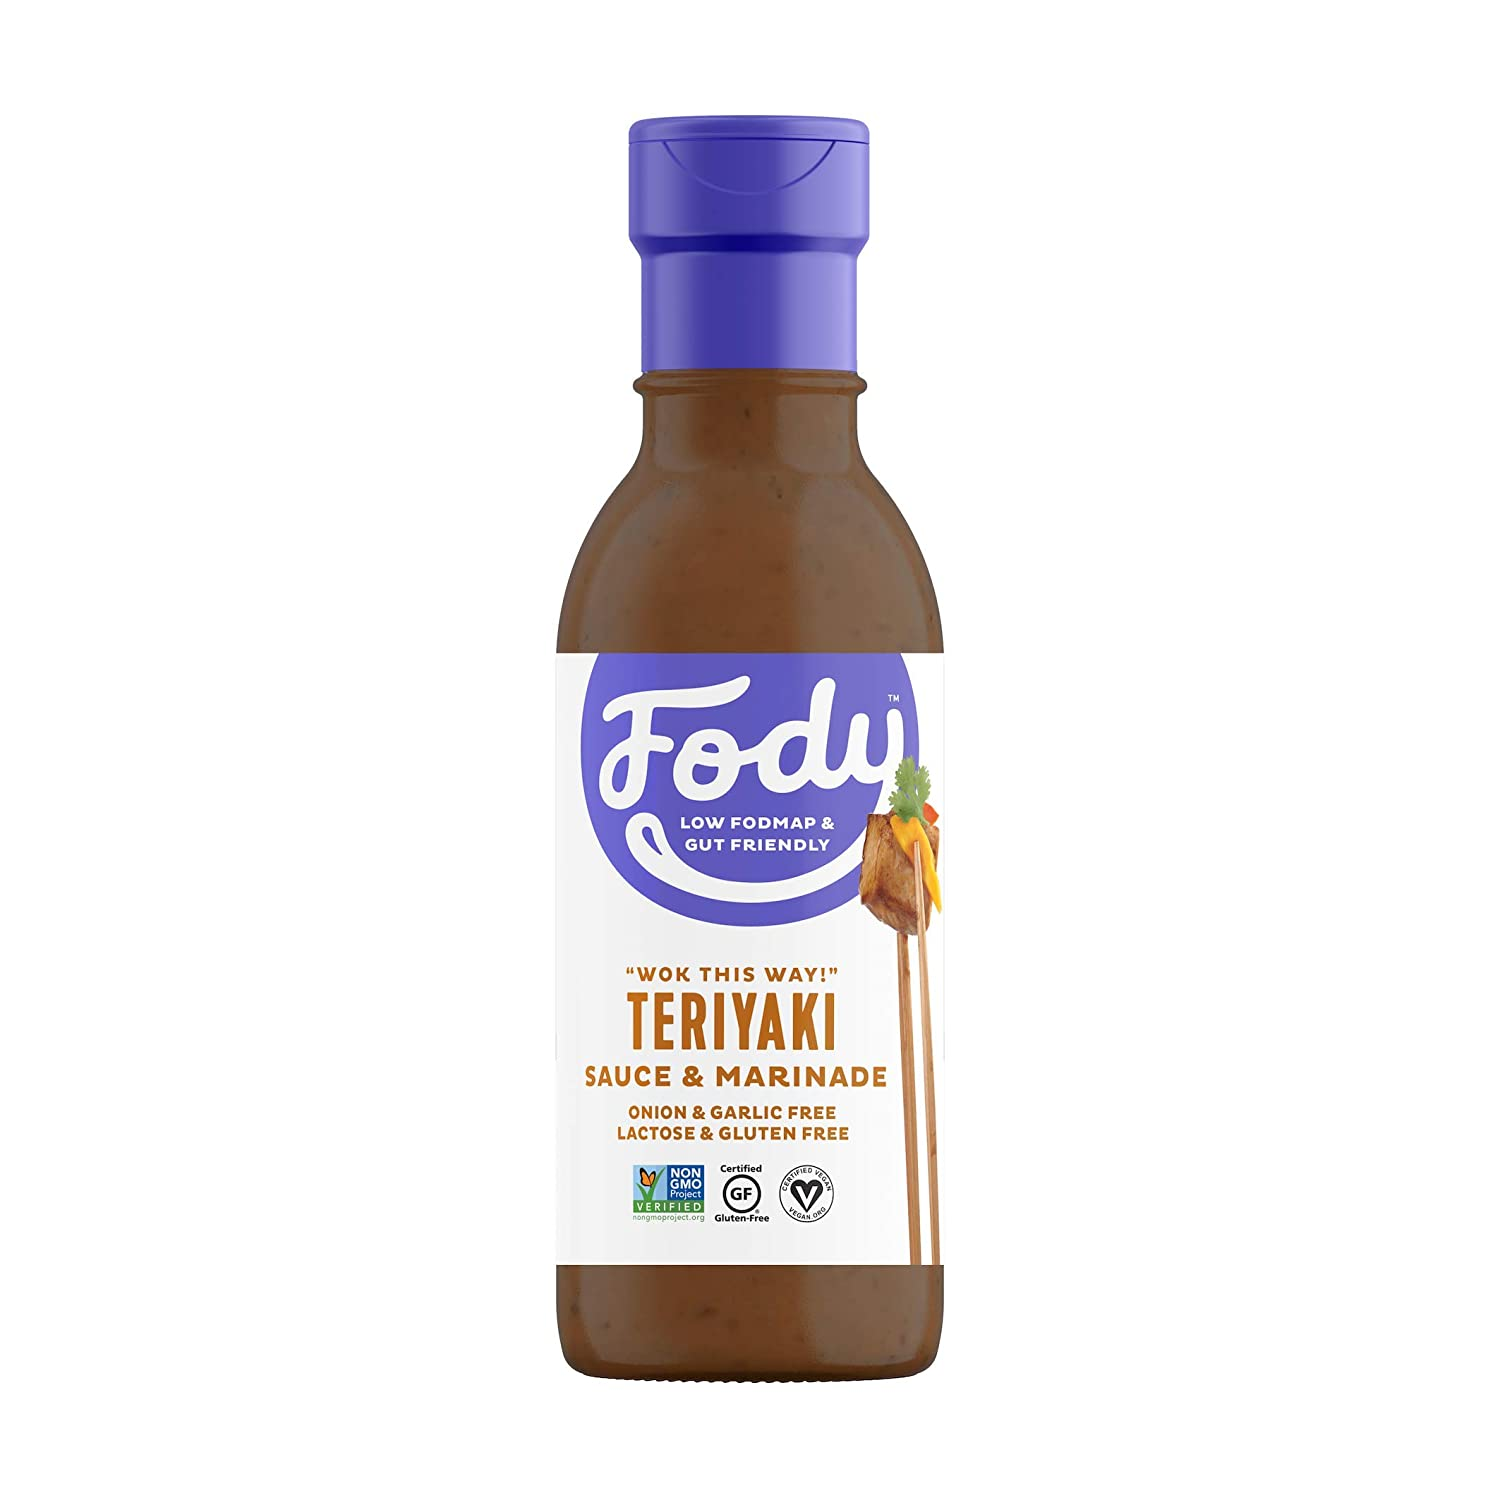 Fody Foods Vegan Teriyaki Sauce Marinade Pack | Sesame Tamari | Low FODMAP Certified | Gut Friendly No Onion No Garlic No MSG | IBS Friendly | Gluten Free Lactose Free | 4 Bottles, 8 Ounce